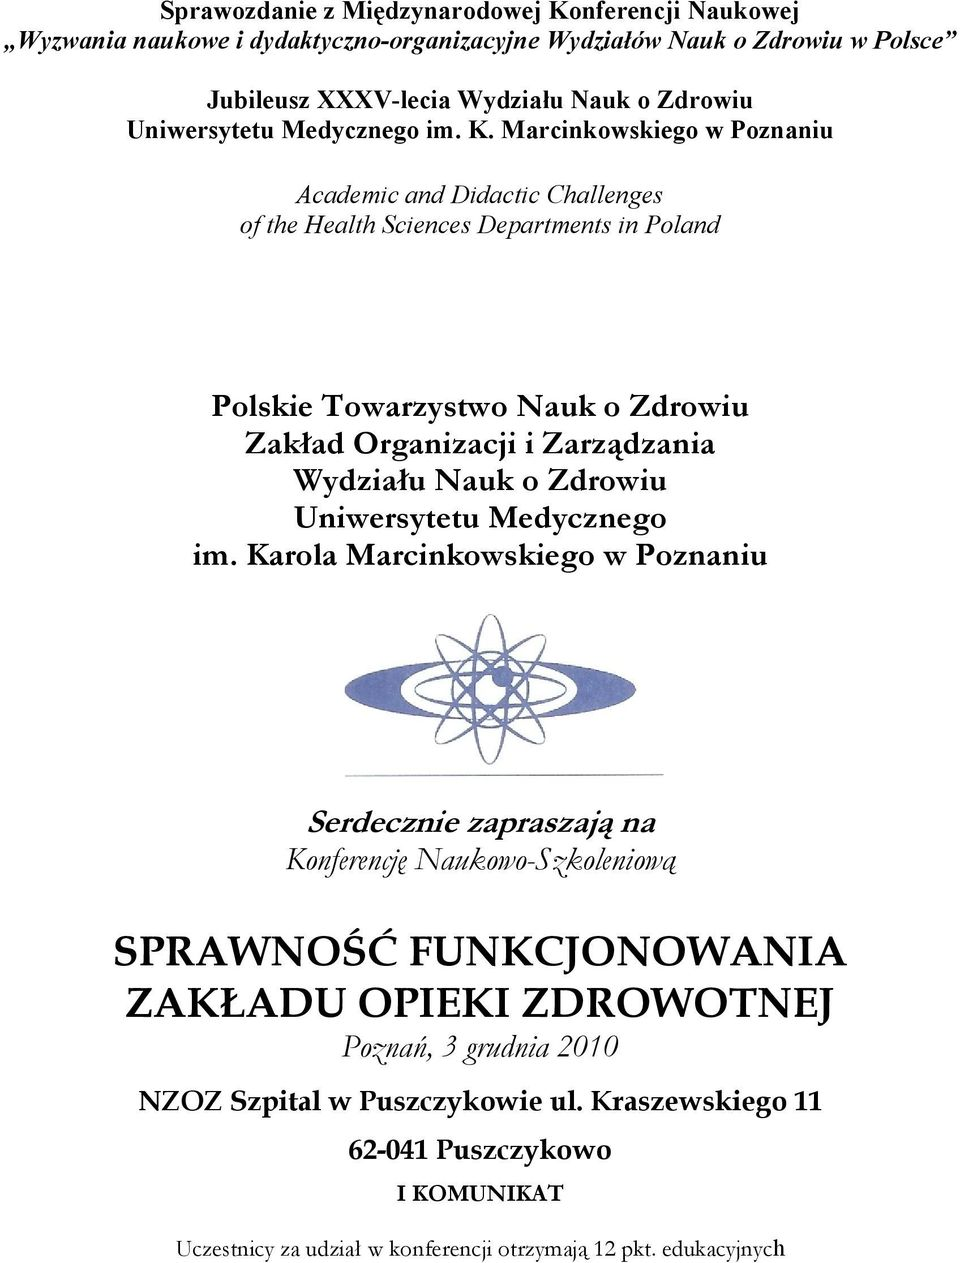 Marcinkowskiego w Poznaniu Academic and Didactic Challenges of the Health Sciences Departments in Poland Polskie Towarzystwo Nauk o Zdrowiu Zakład Organizacji i Zarządzania Wydziału